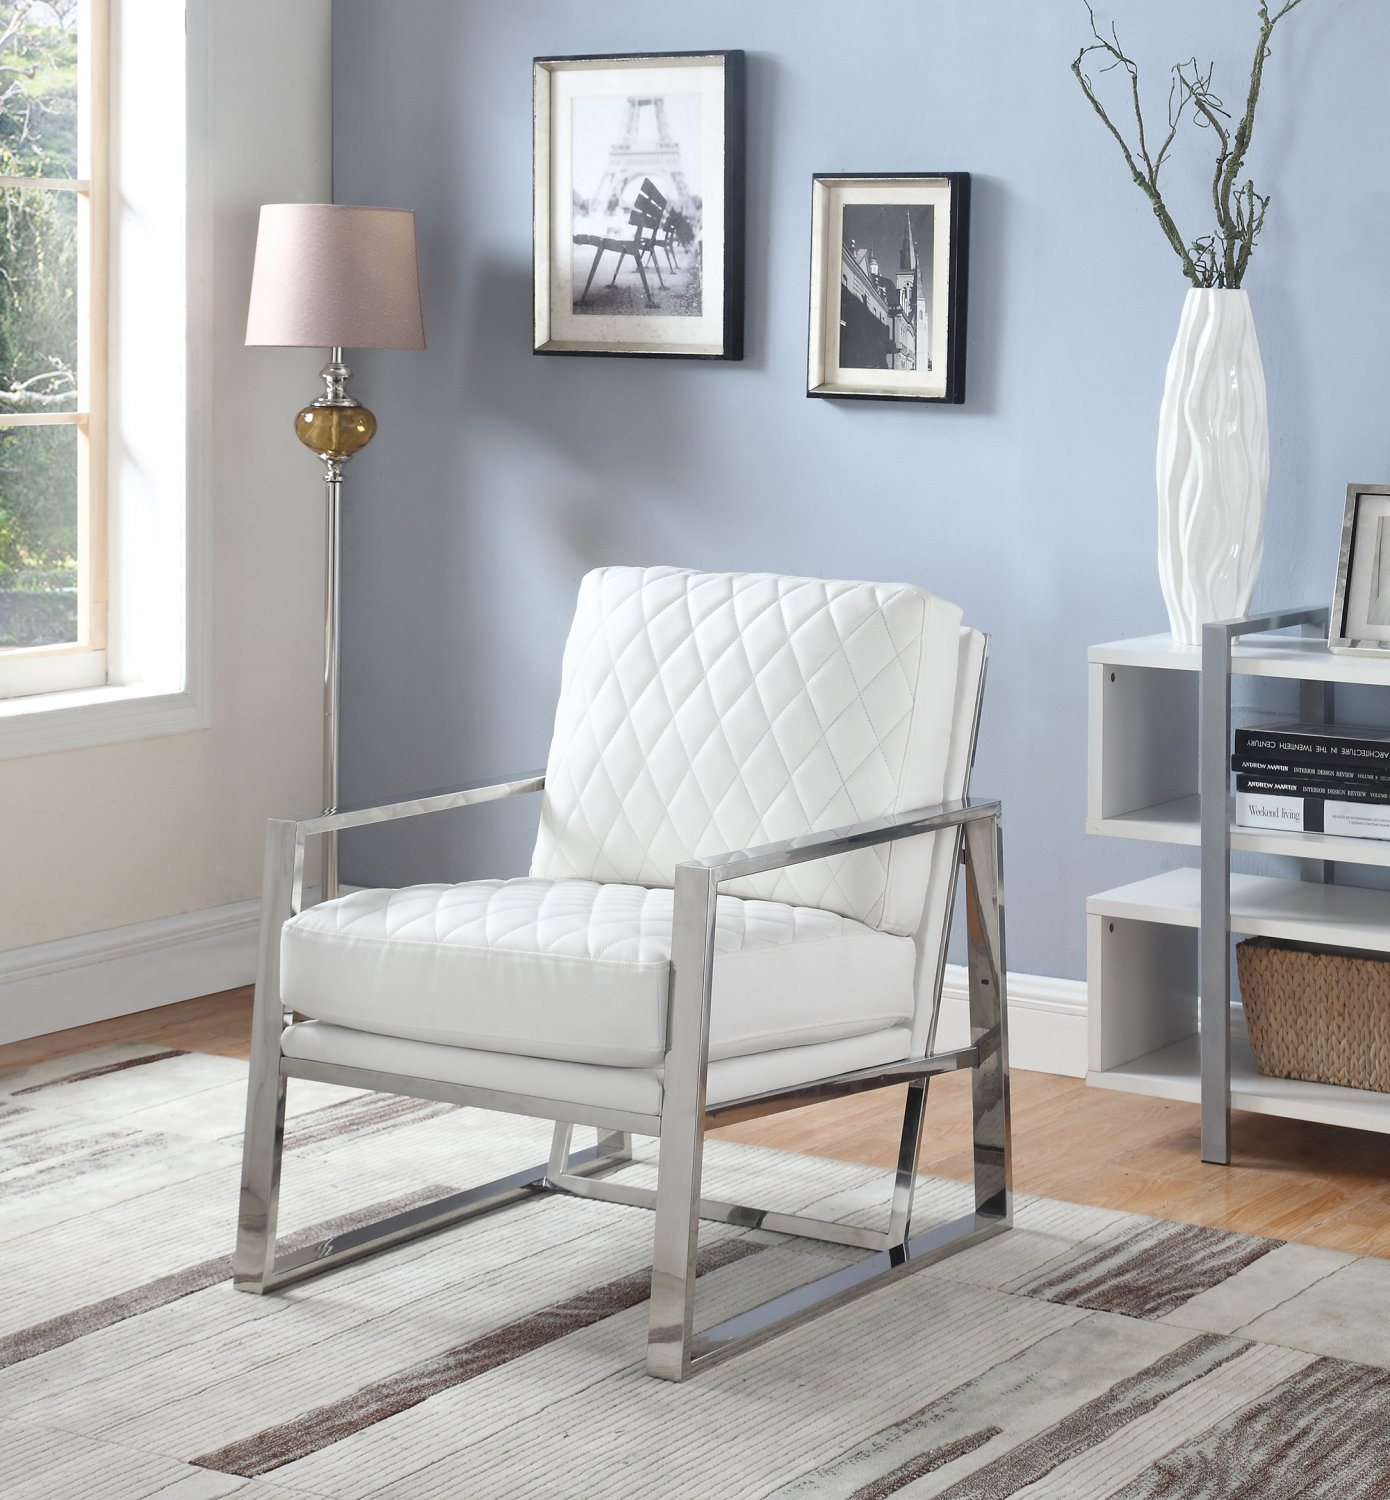 3020, Anniversary Upholstered Faux Leather Stainless Steel Accent Chair  (White)